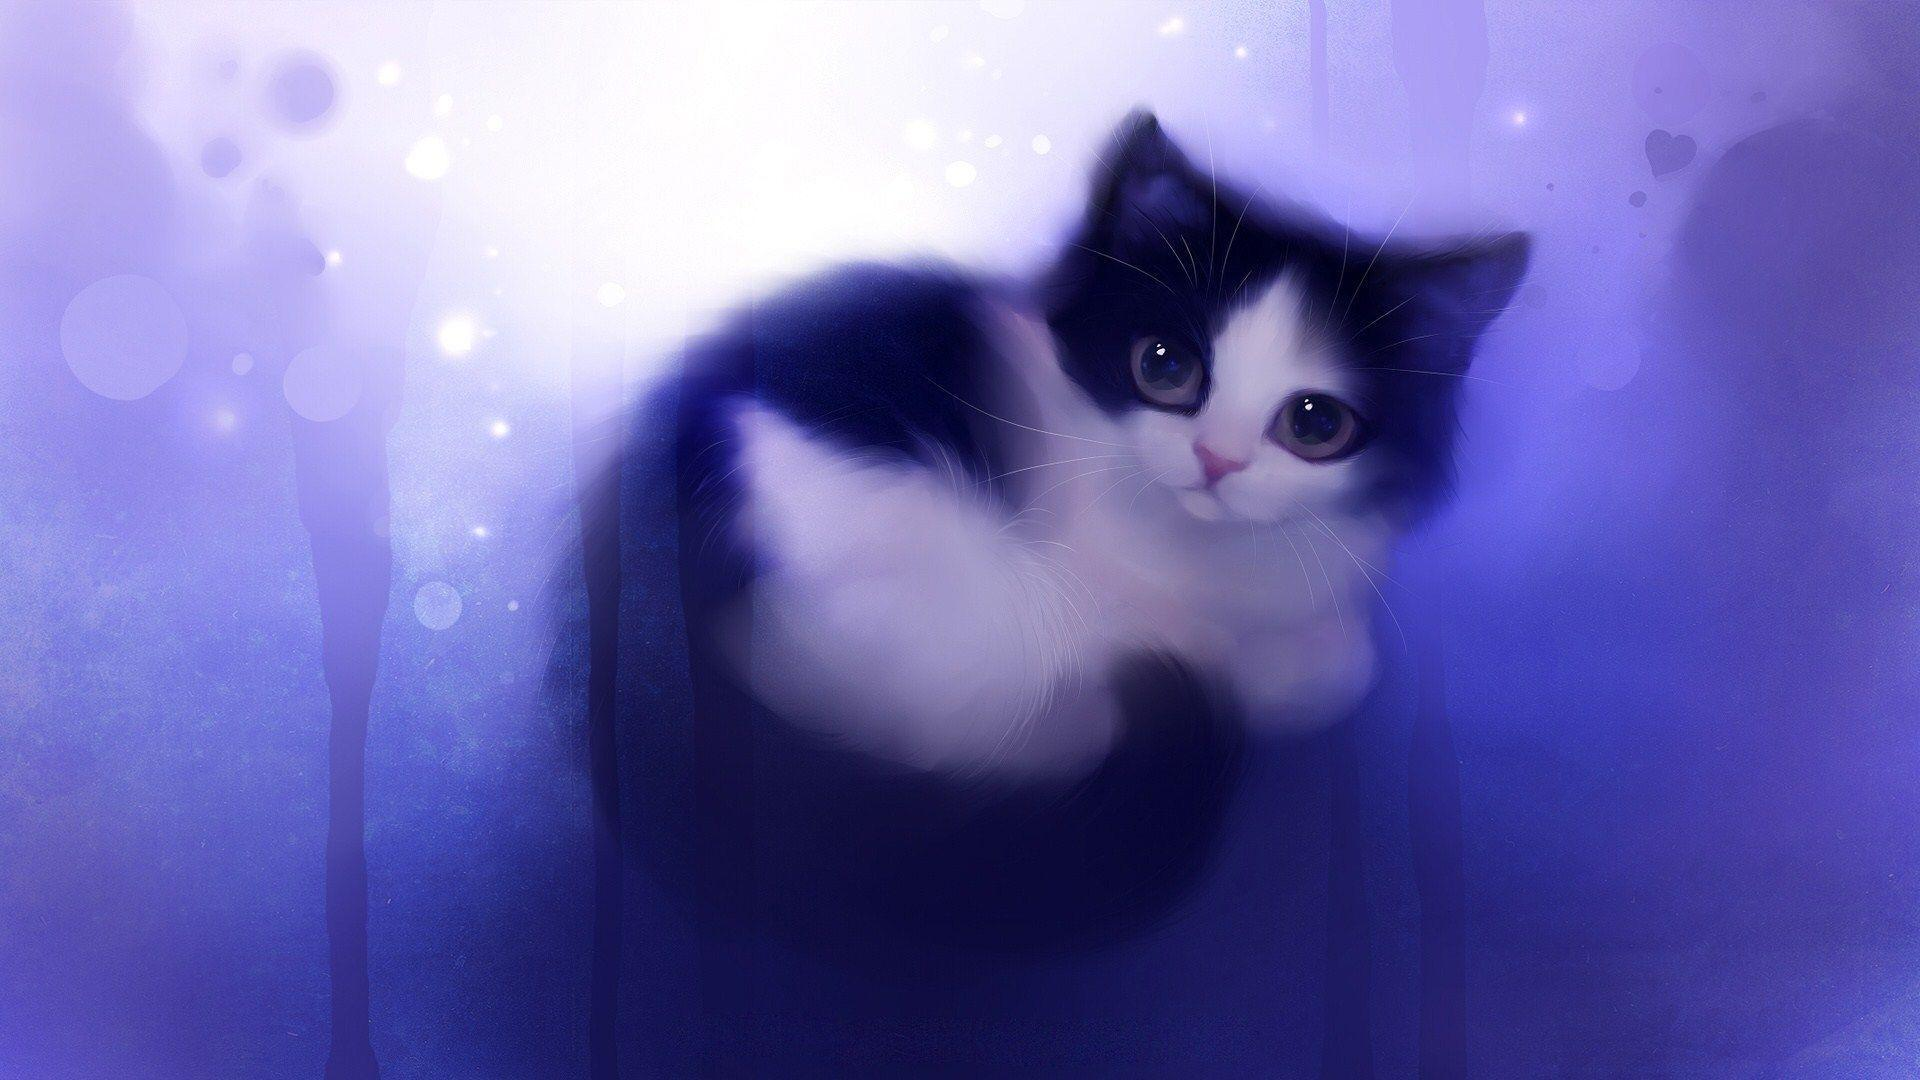 Anime Cats Wallpapers - Wallpaper Cave